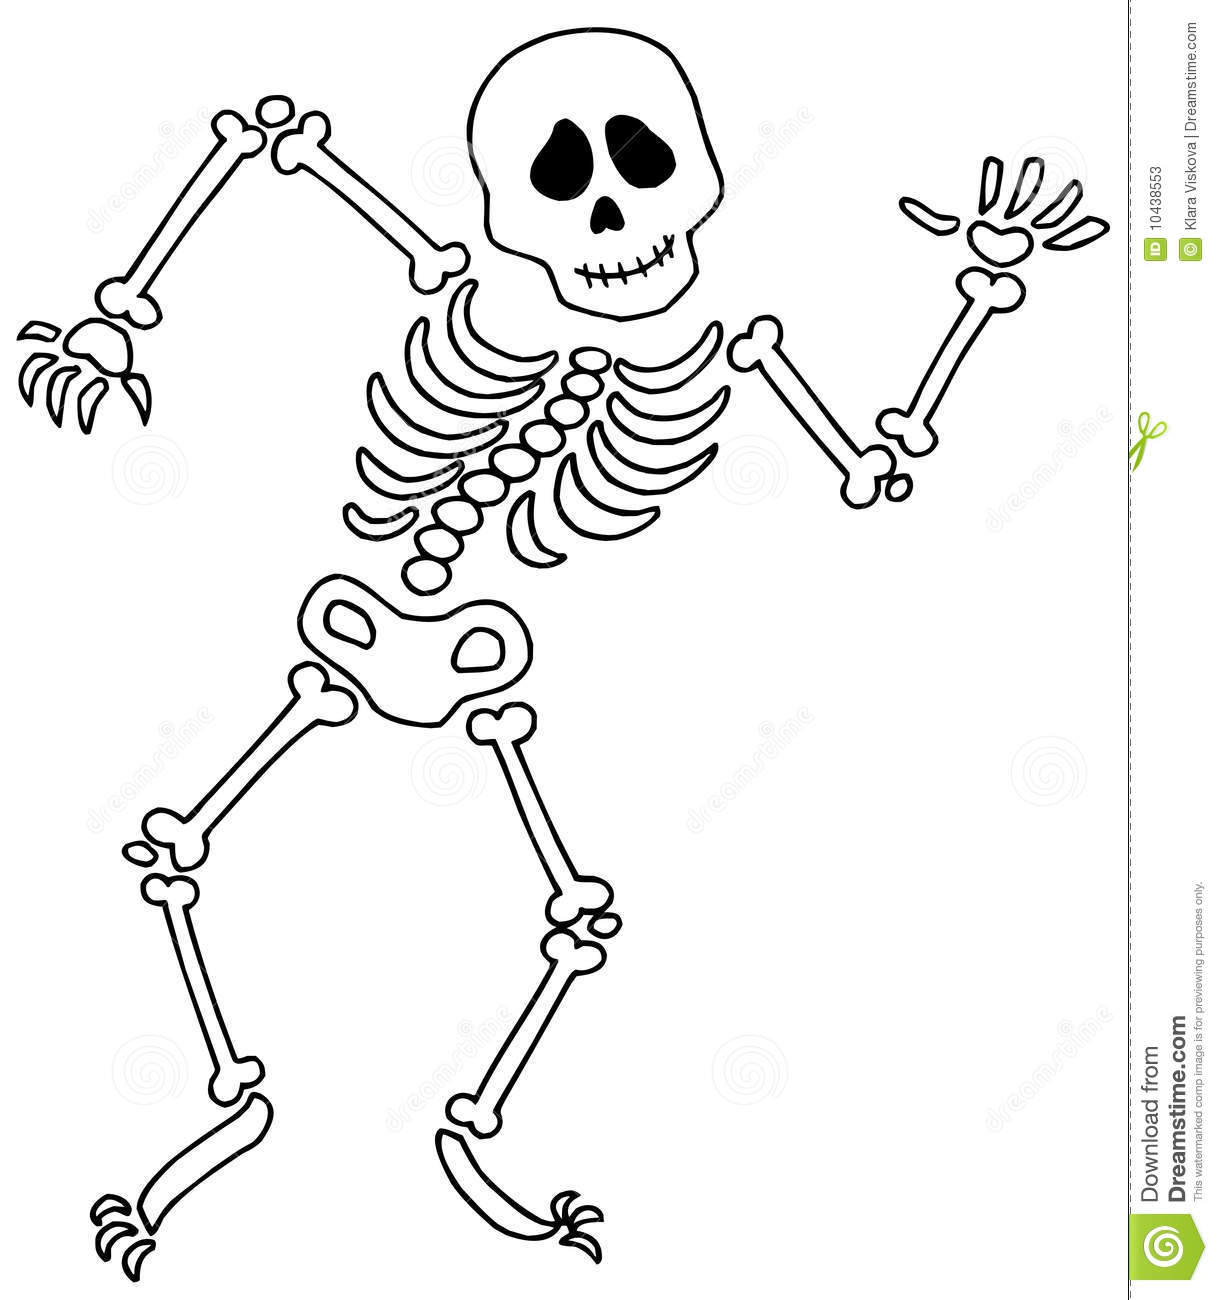 Halloween skeleton pictures clipart graphic royalty free library 95+ Clipart Skeleton | ClipartLook graphic royalty free library